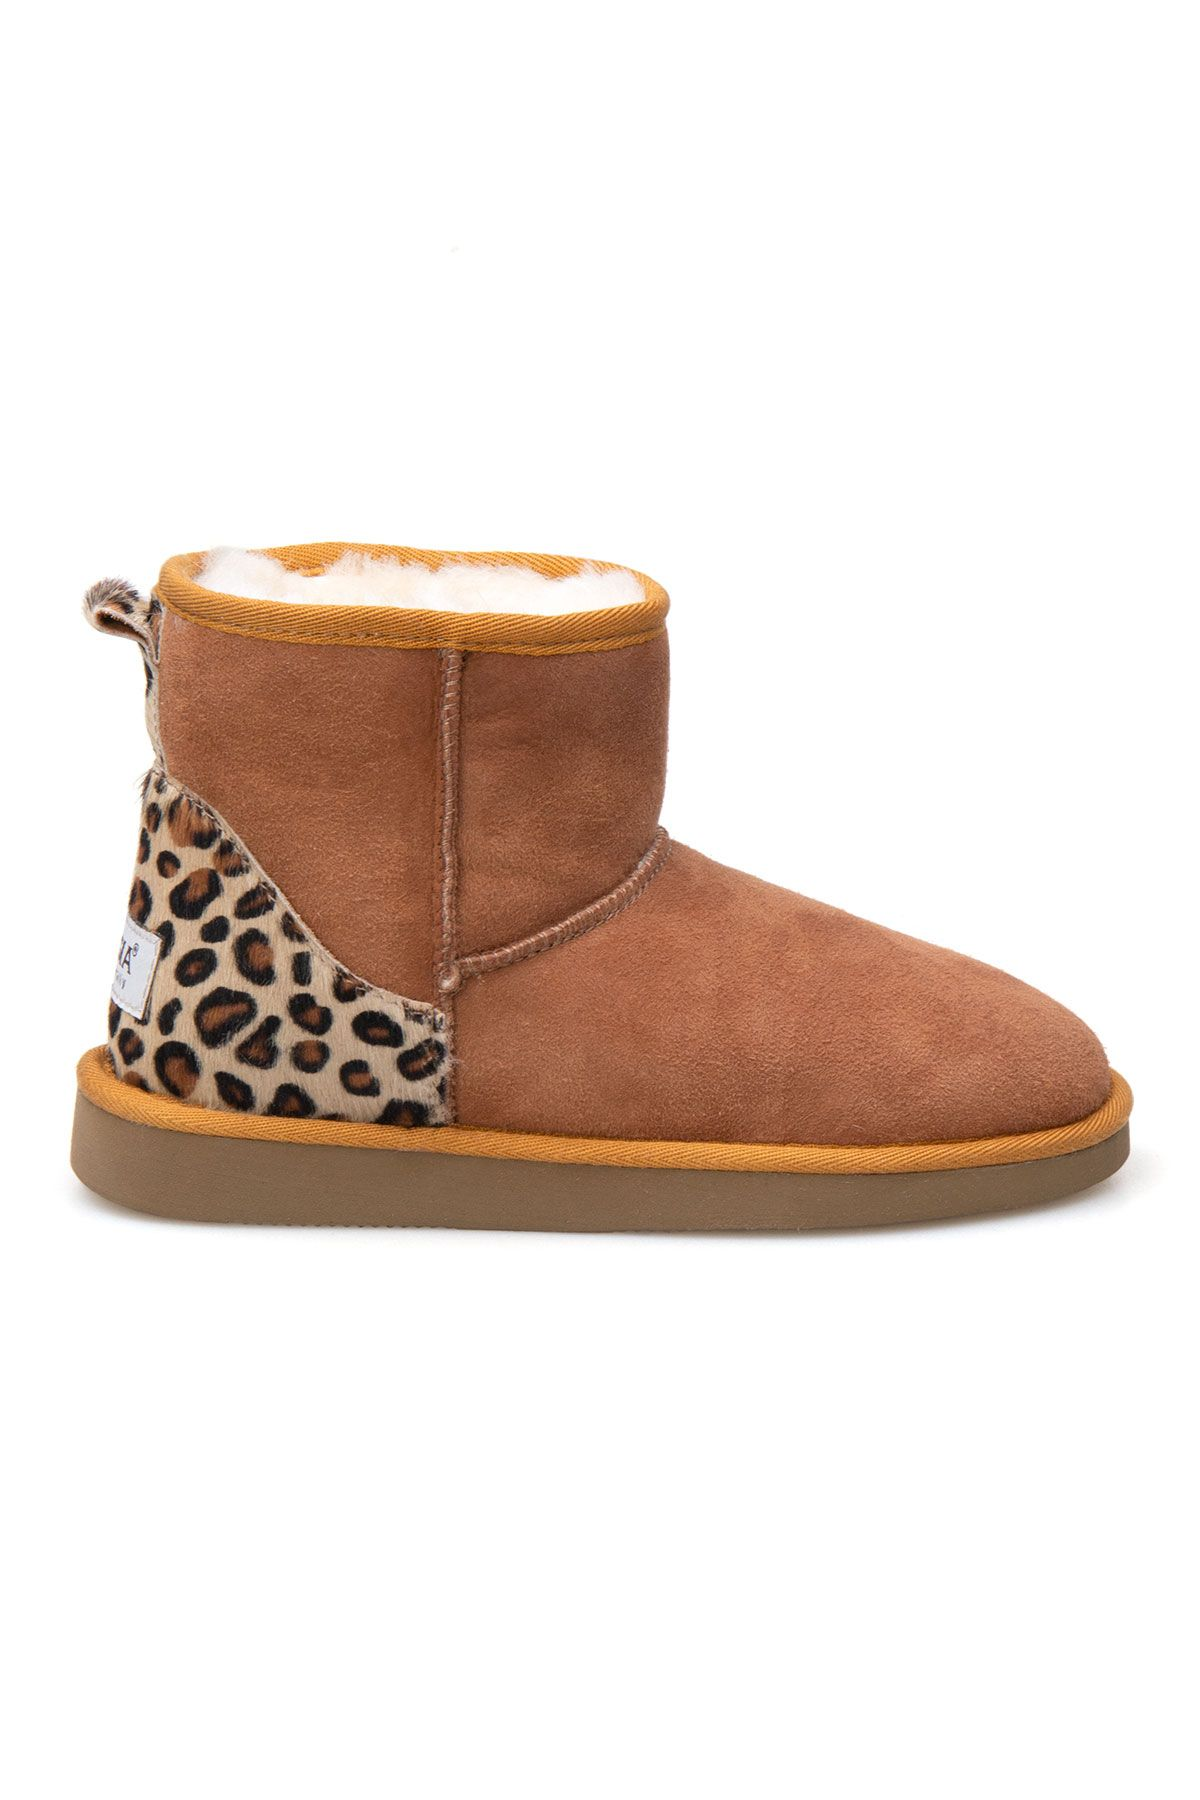 Pegia Leopard Detailed Women's Boots 191026 Ginger